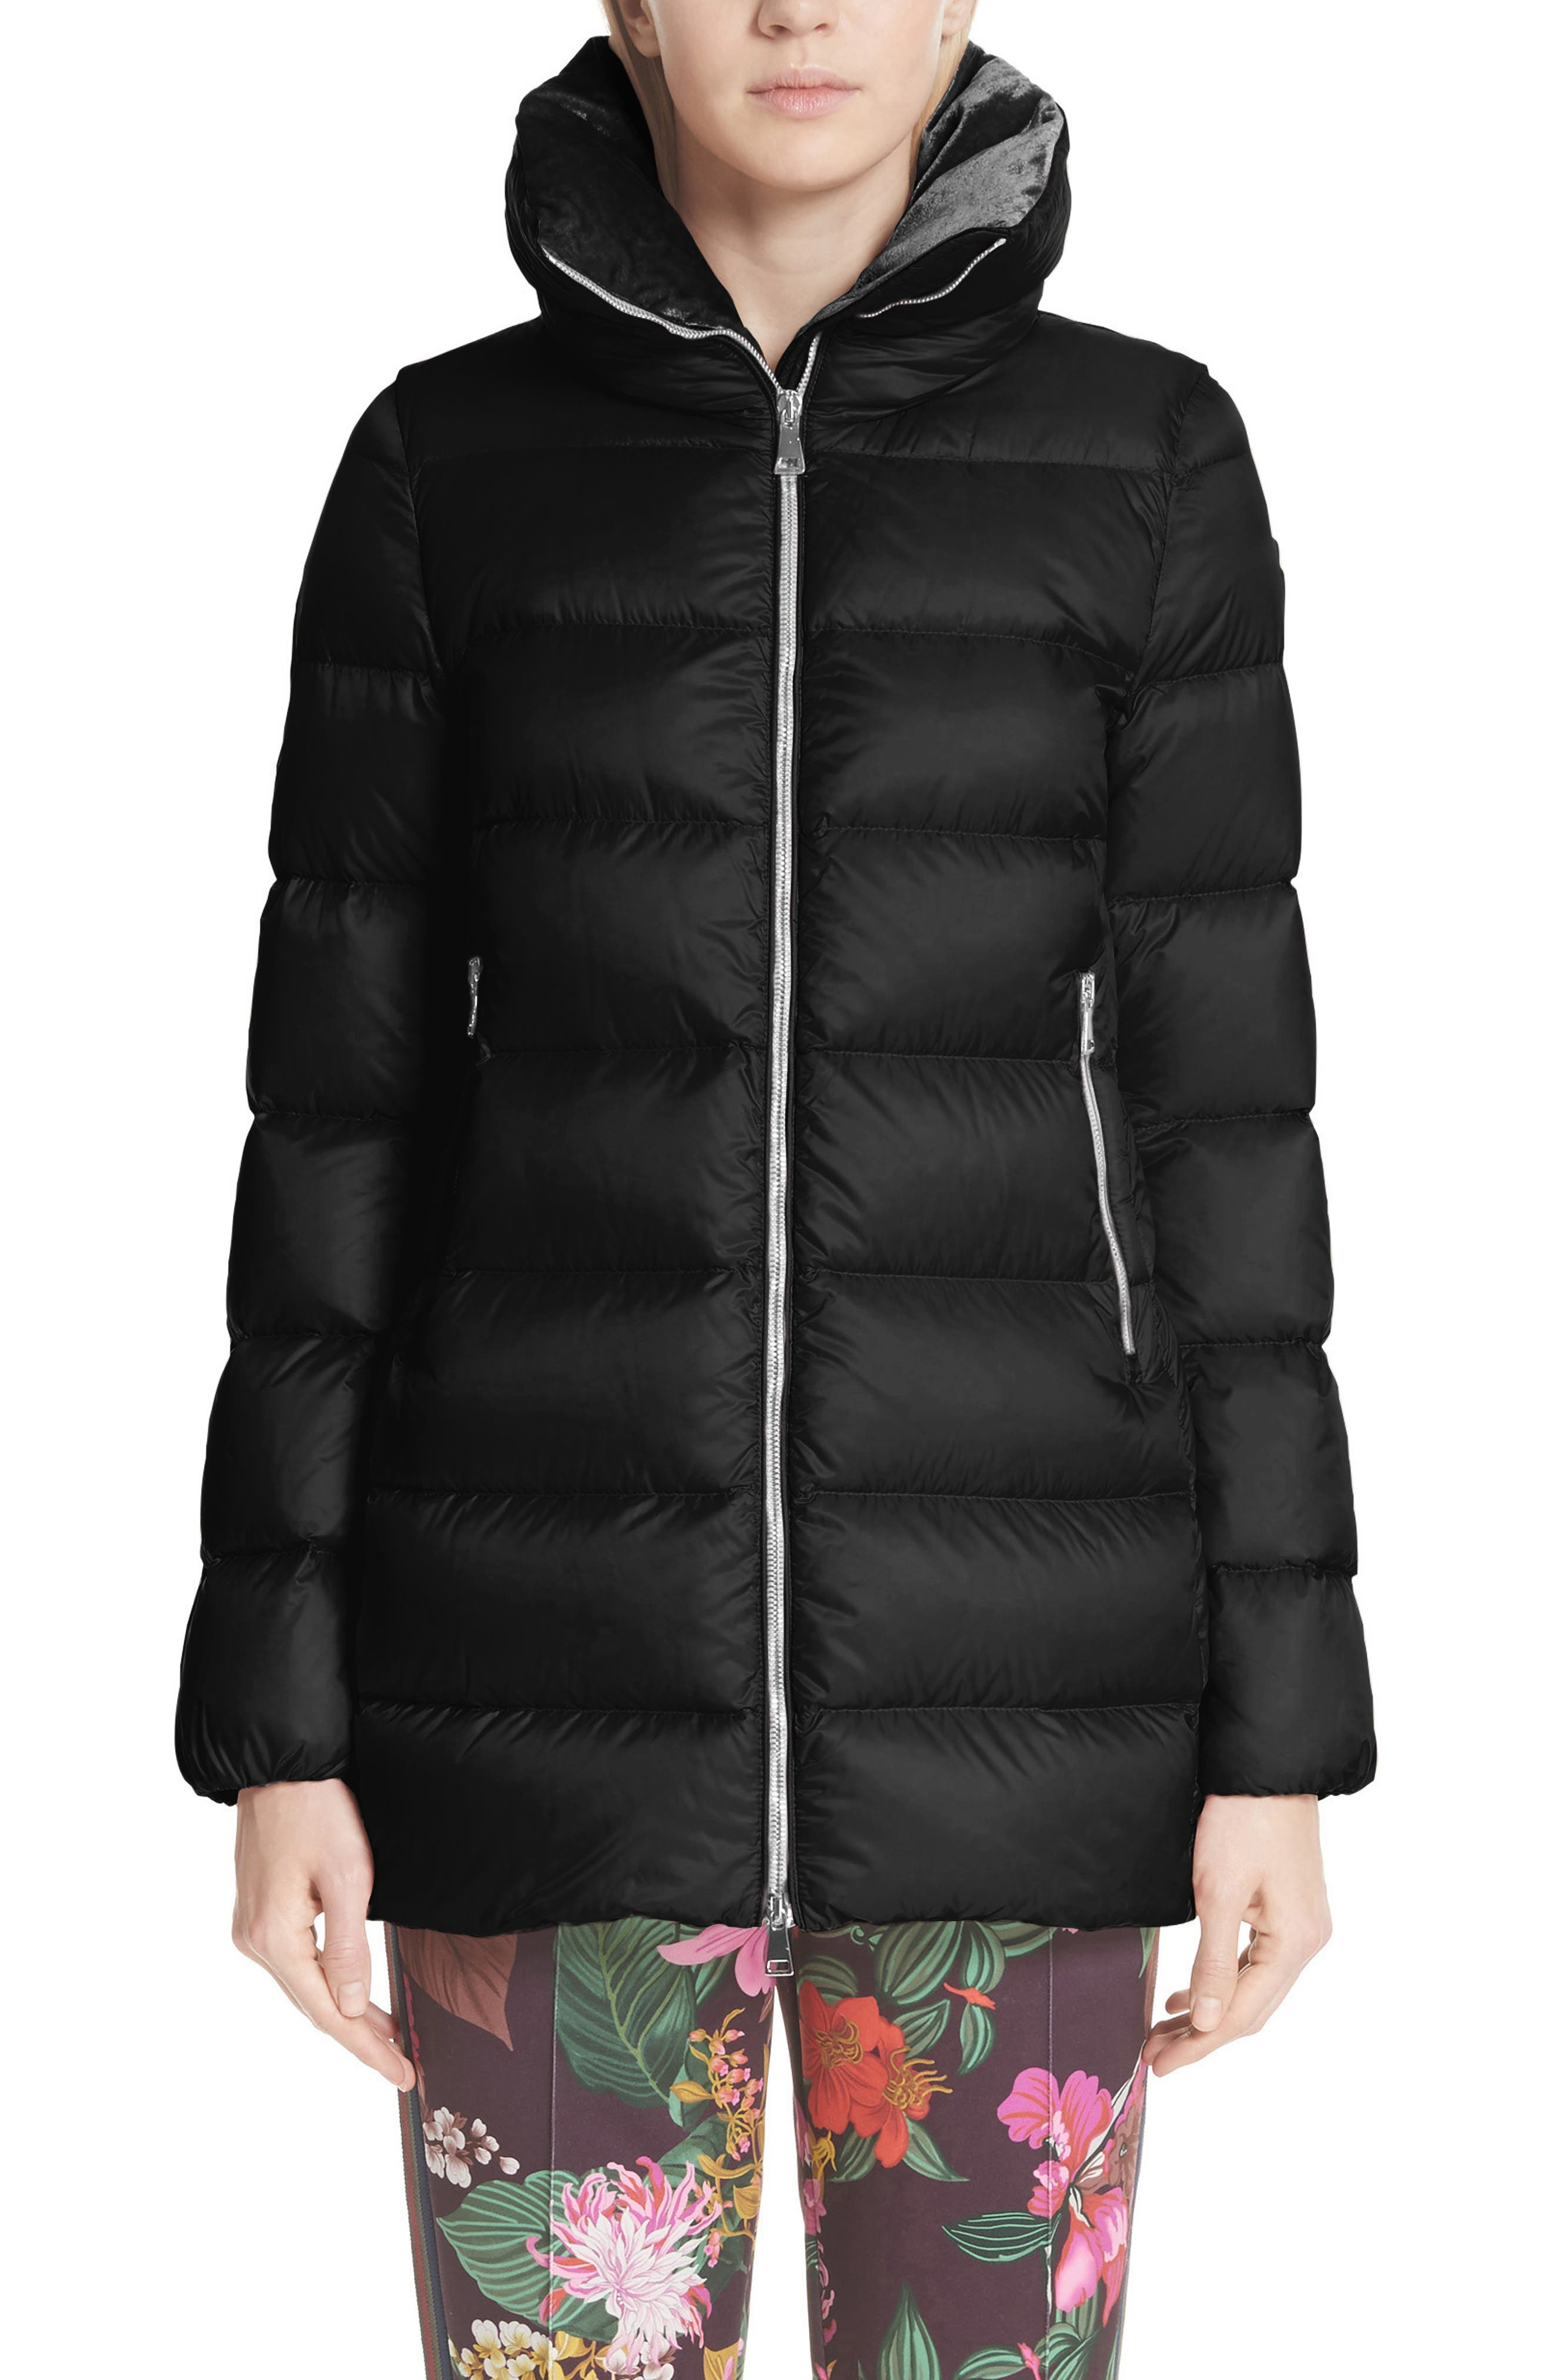 MONCLER, Torcol Quilted Down Jacket, Main thumbnail 1, color, BLACK